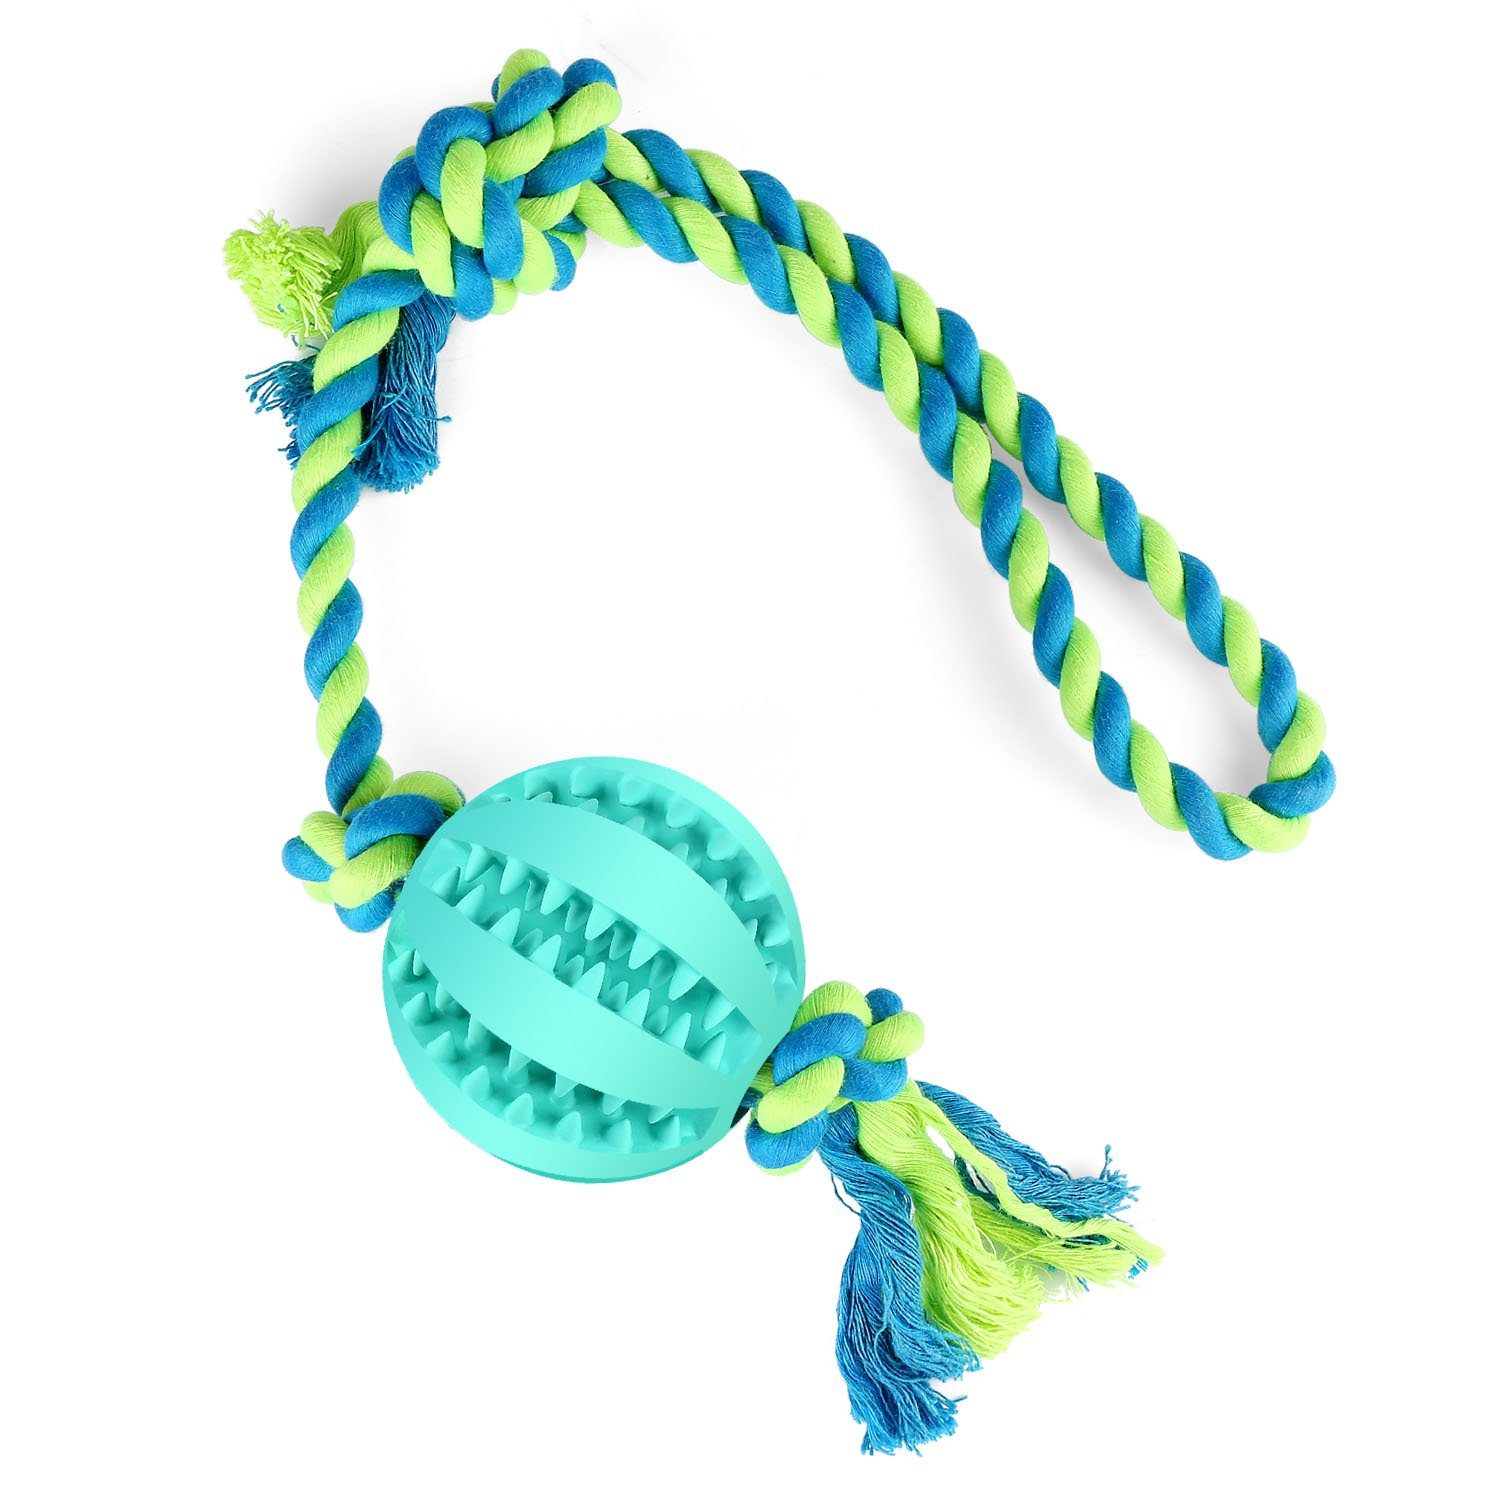 Dog Tug Toys - Tug Rope with Handles Easy for Interaction, Dog Chew Toy for Aggressive Chewers, Suitable for Large Medium Small Dogs (Blue)